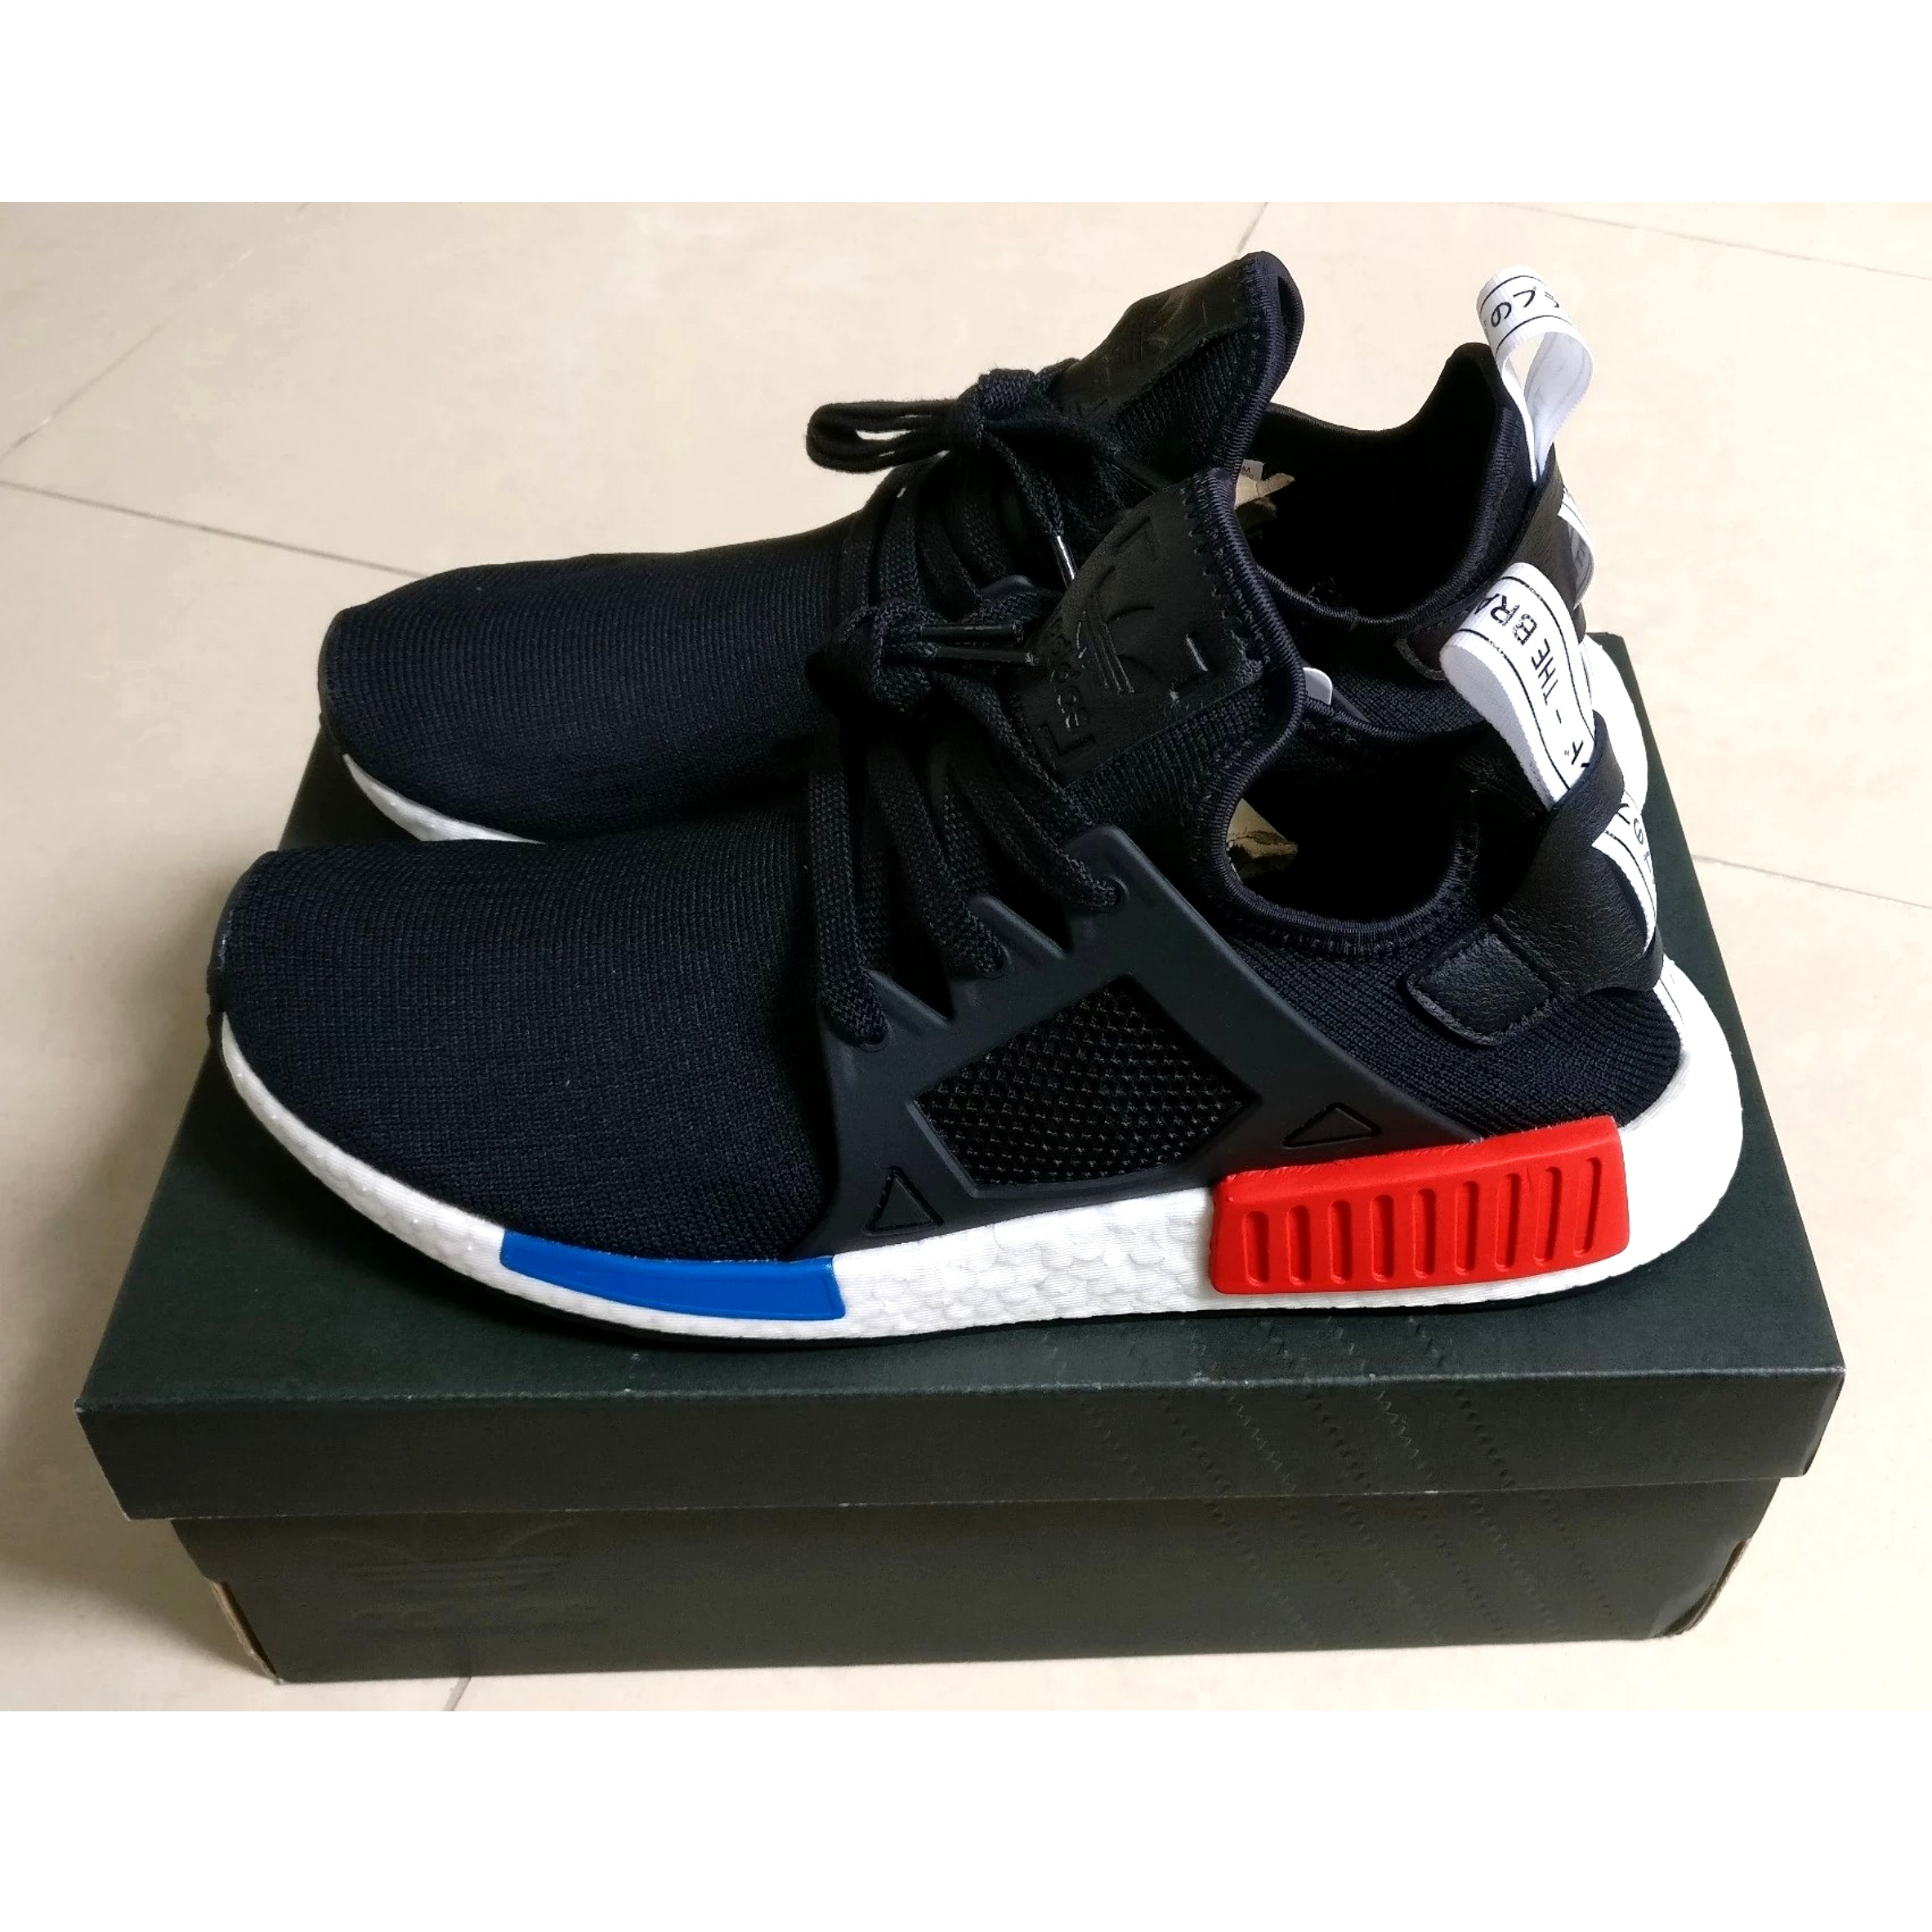 98c40e349a9c6 Adidas Nmd XR1 PK OG (BN in box) 100% Authentic with Receipt ...